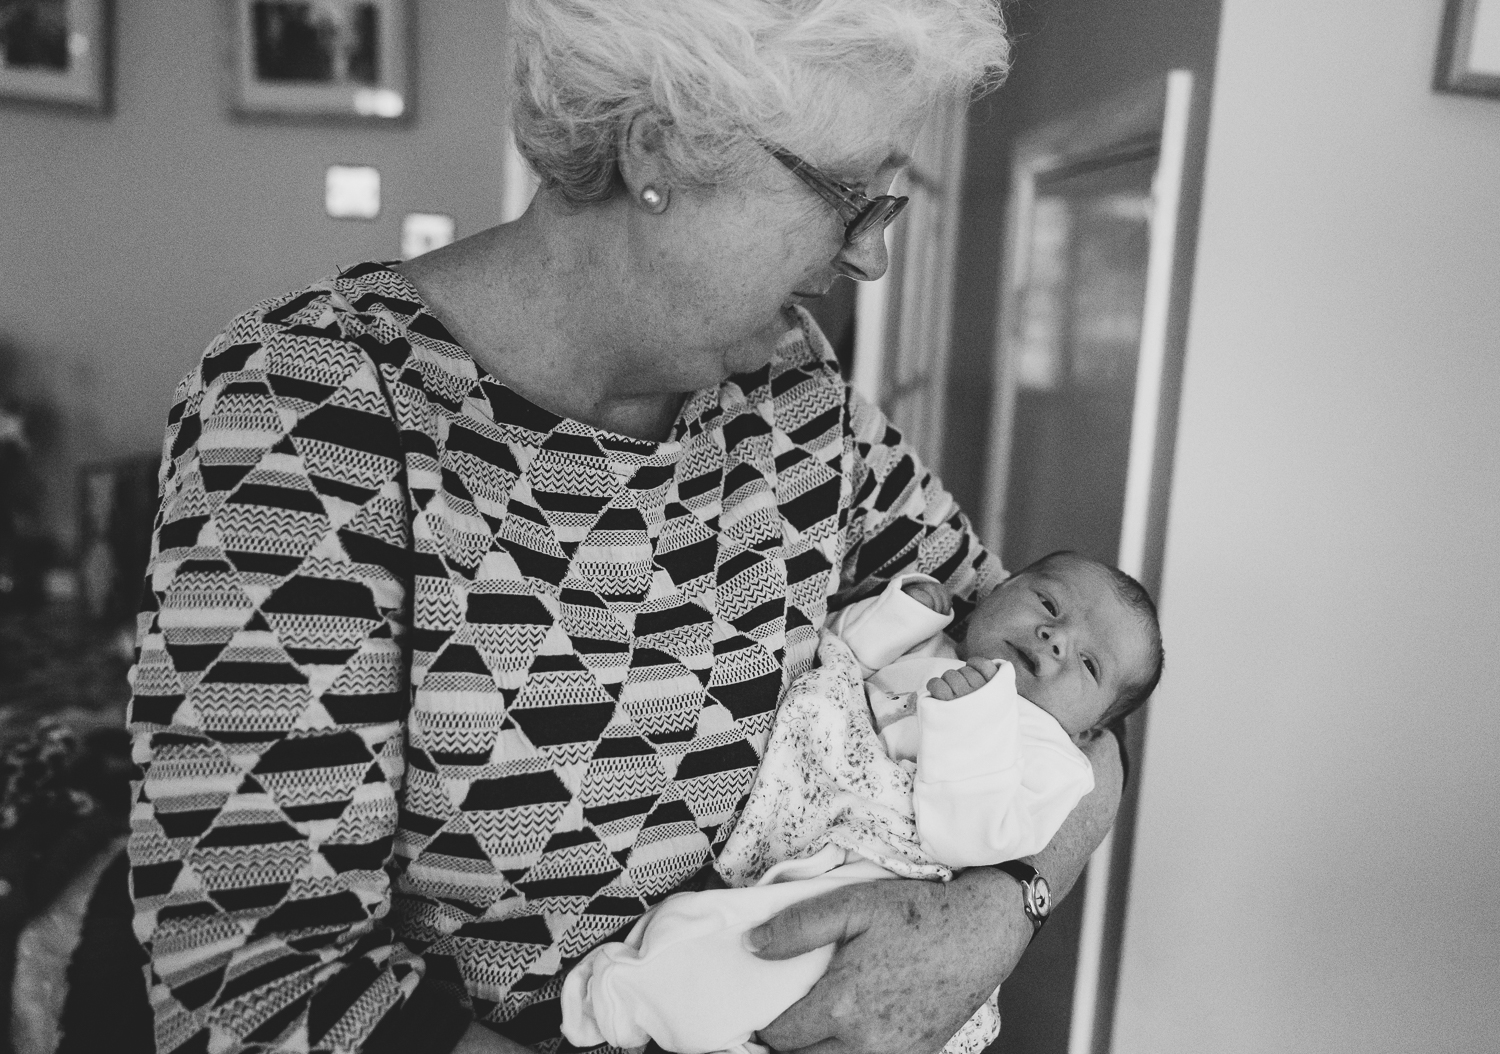 GRANDMOTHER WITH NEWBORN BABY